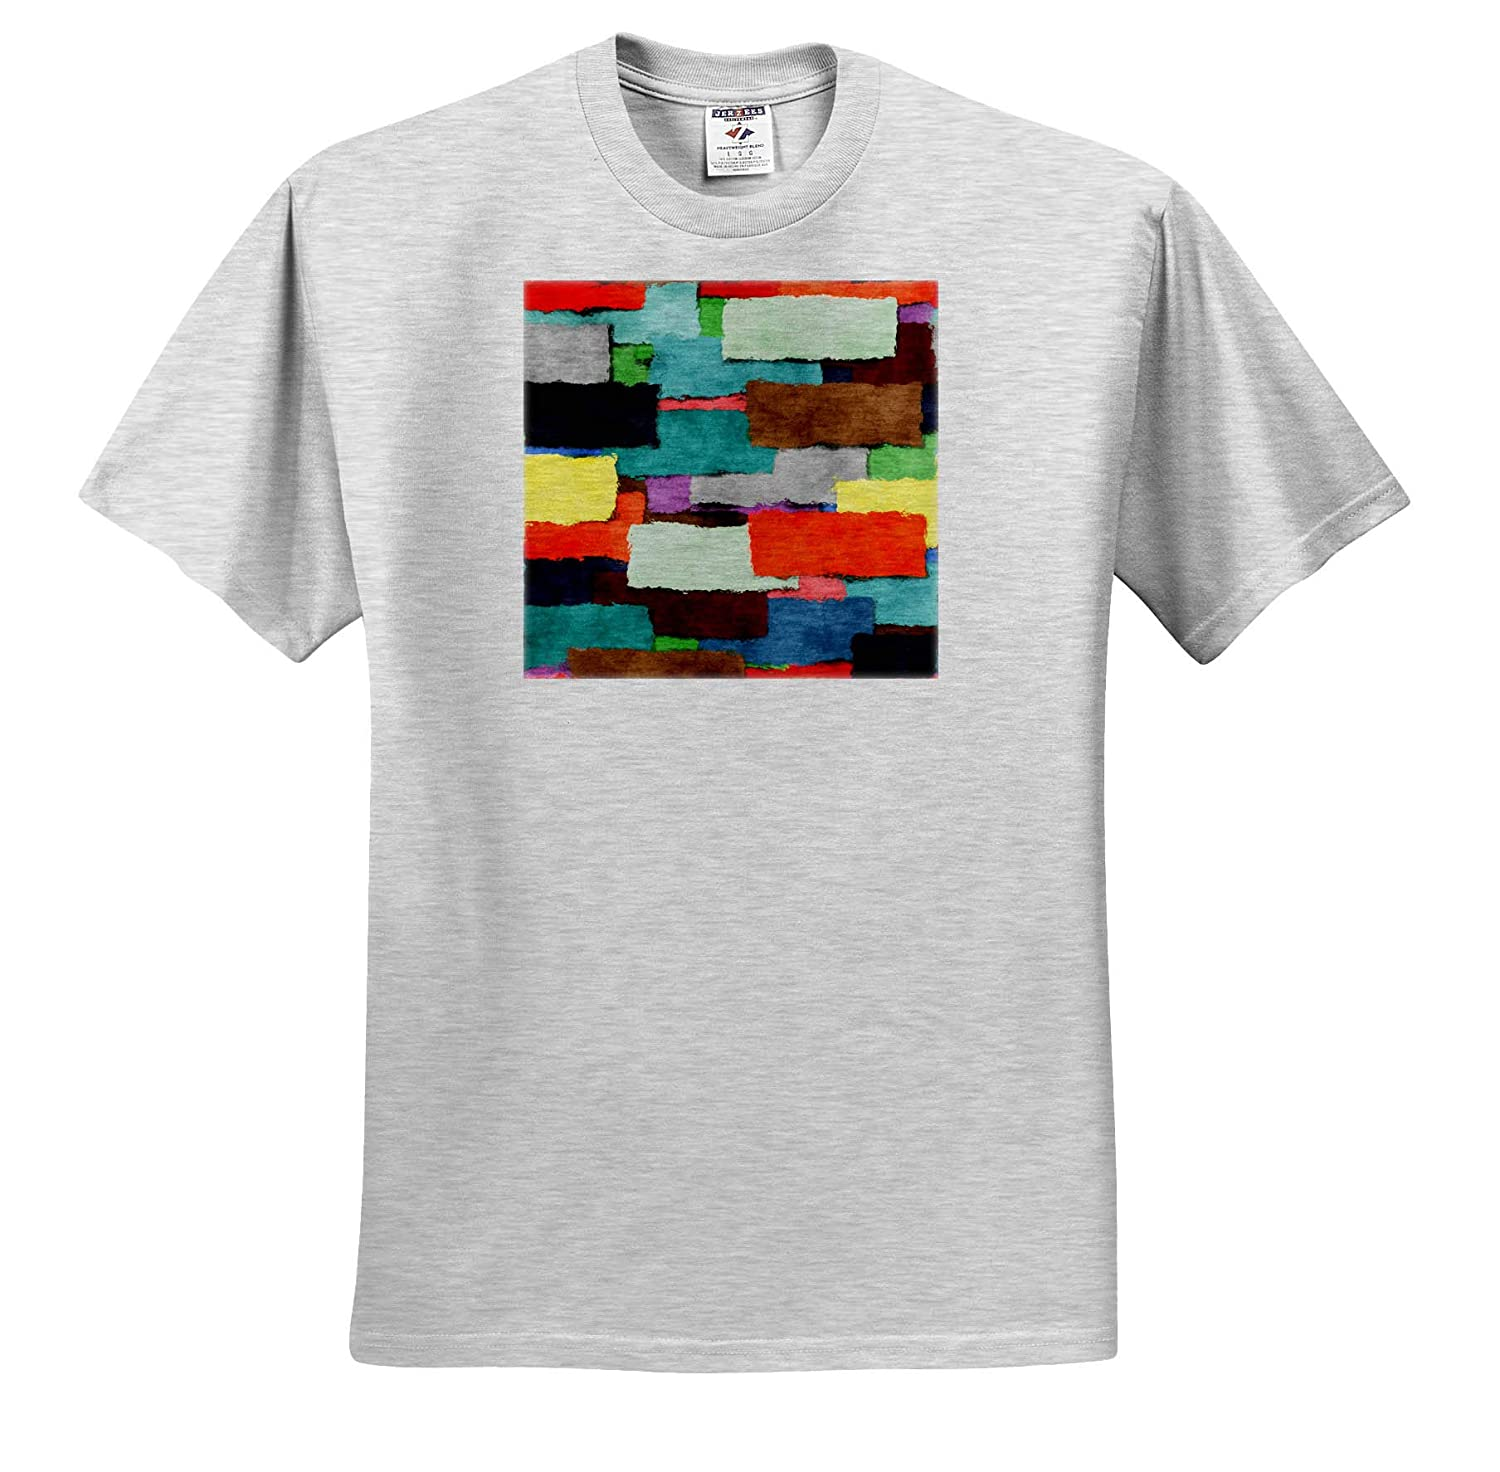 Textured Rectangular Shapes 3dRose Perkins Designs Abstract Colorful Layers of Rough Edged T-Shirts